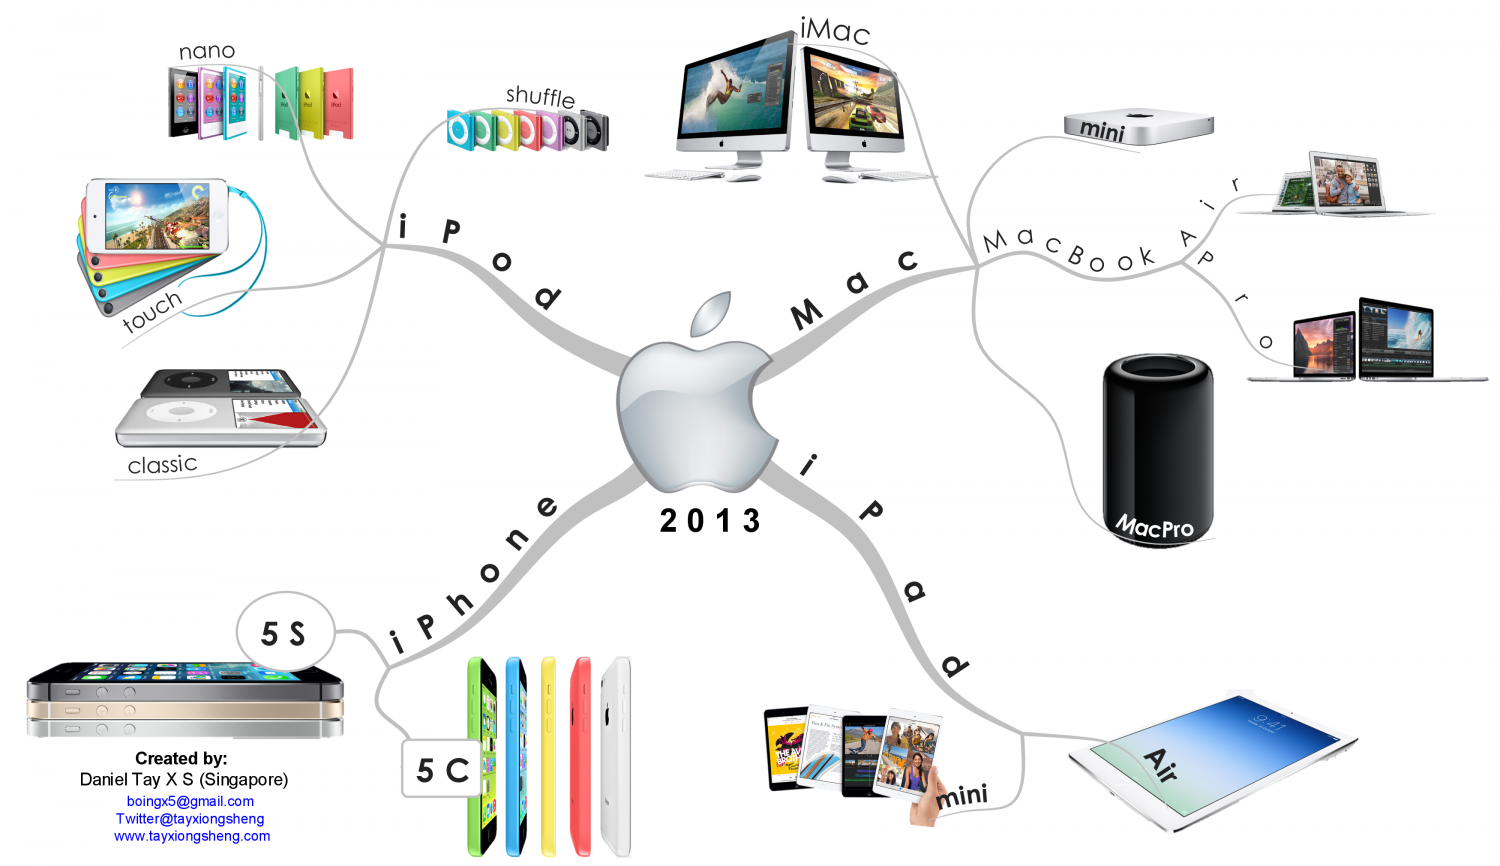 history of apple Apple inc, formerly apple computer, inc, american manufacturer of personal computers, computer peripherals, and computer software it was the first successful personal computer company and the popularizer of the graphical user interface.